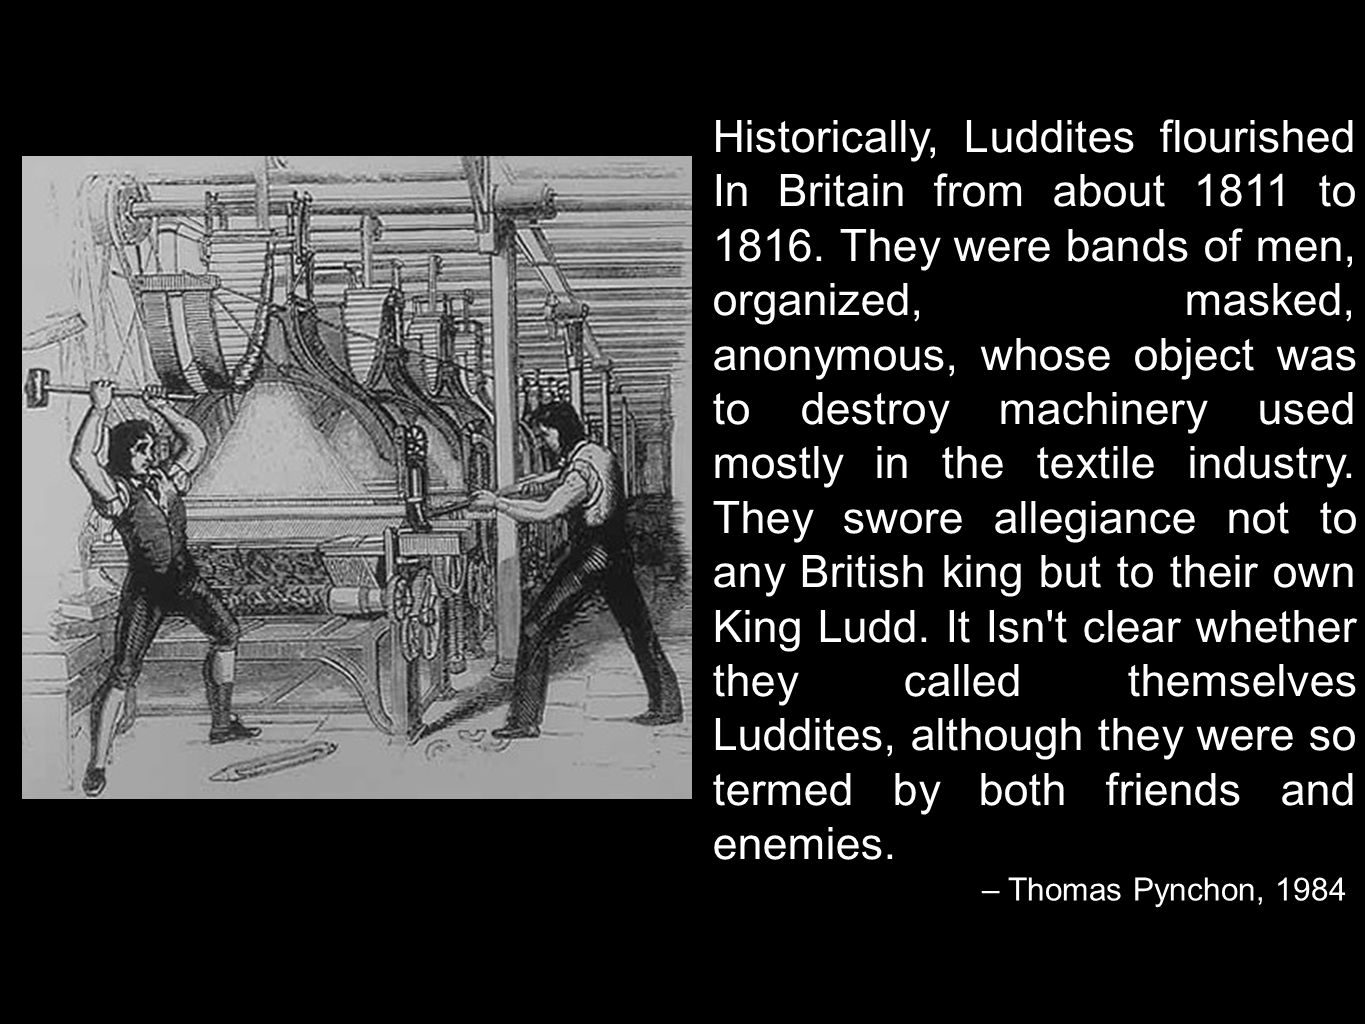 Historically, Luddites flourished In Britain from about 1811 to 1816